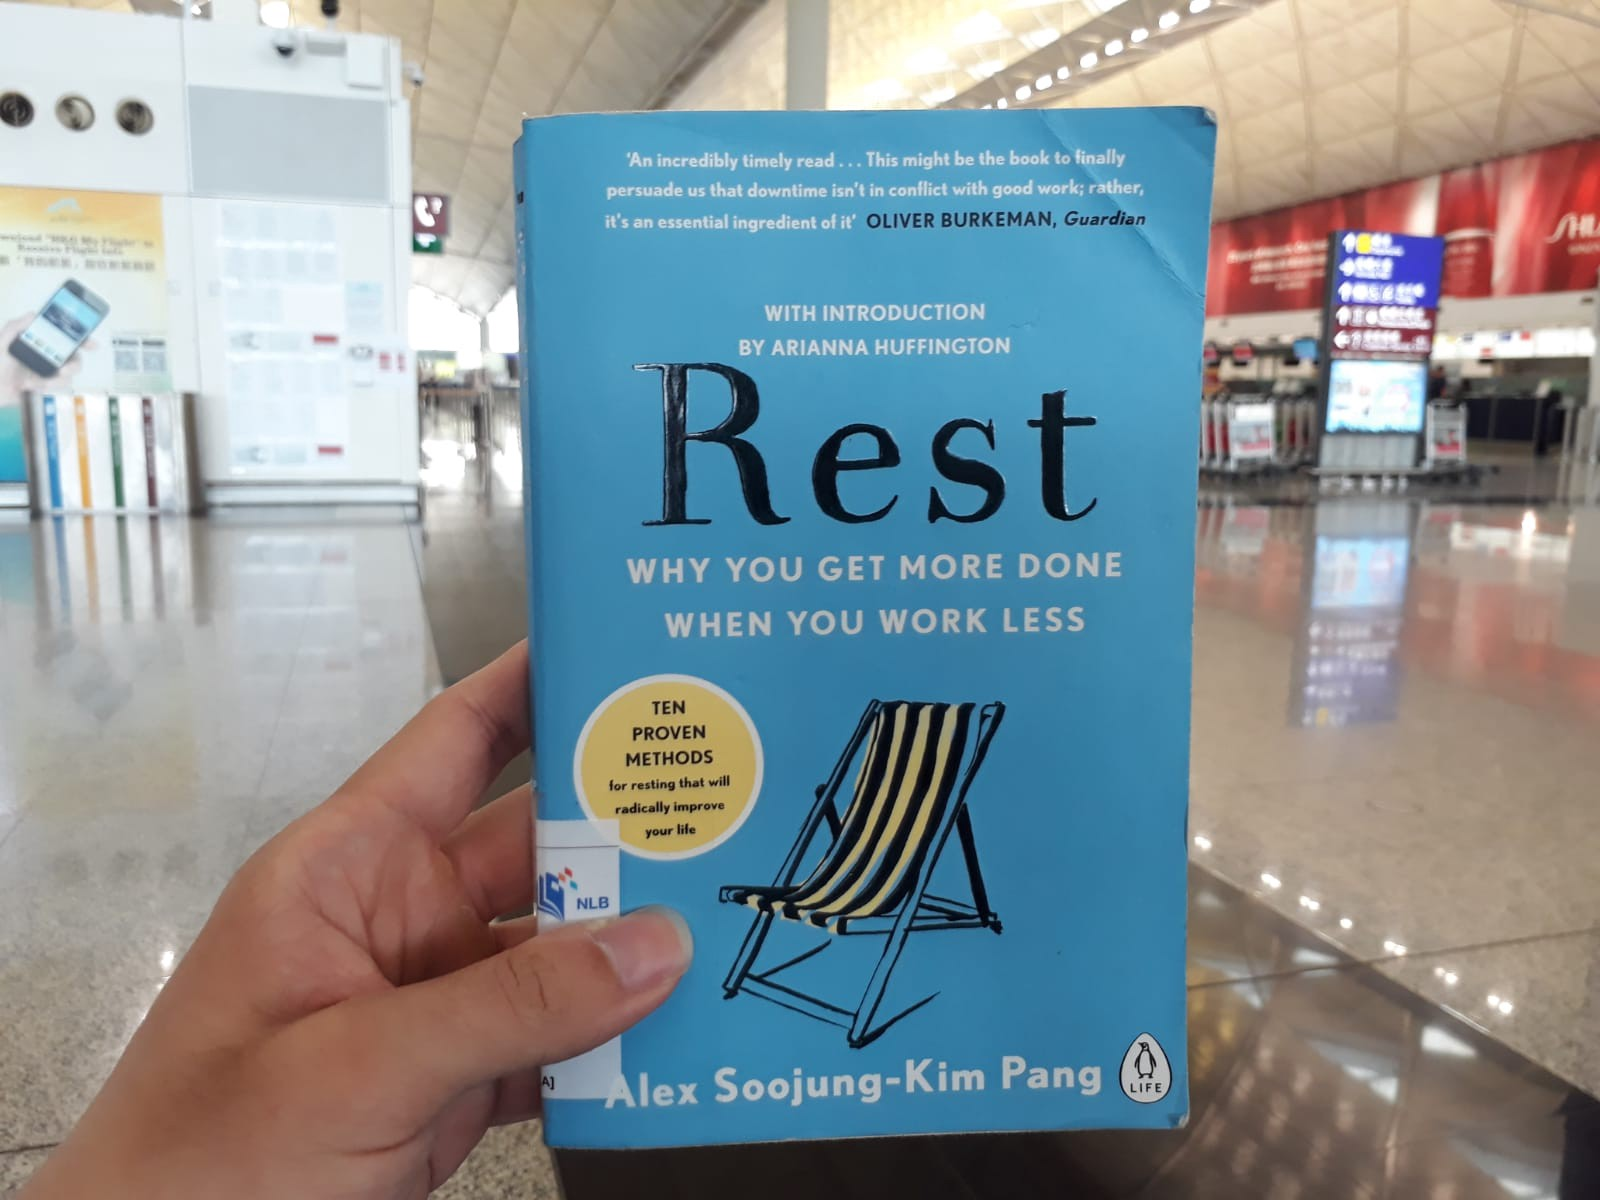 Vincent's Book Recommendation for the Week: On rest as intentional; it is not passive but an active process to feel more nourished and rested. Photo Credit: Vincent Ng